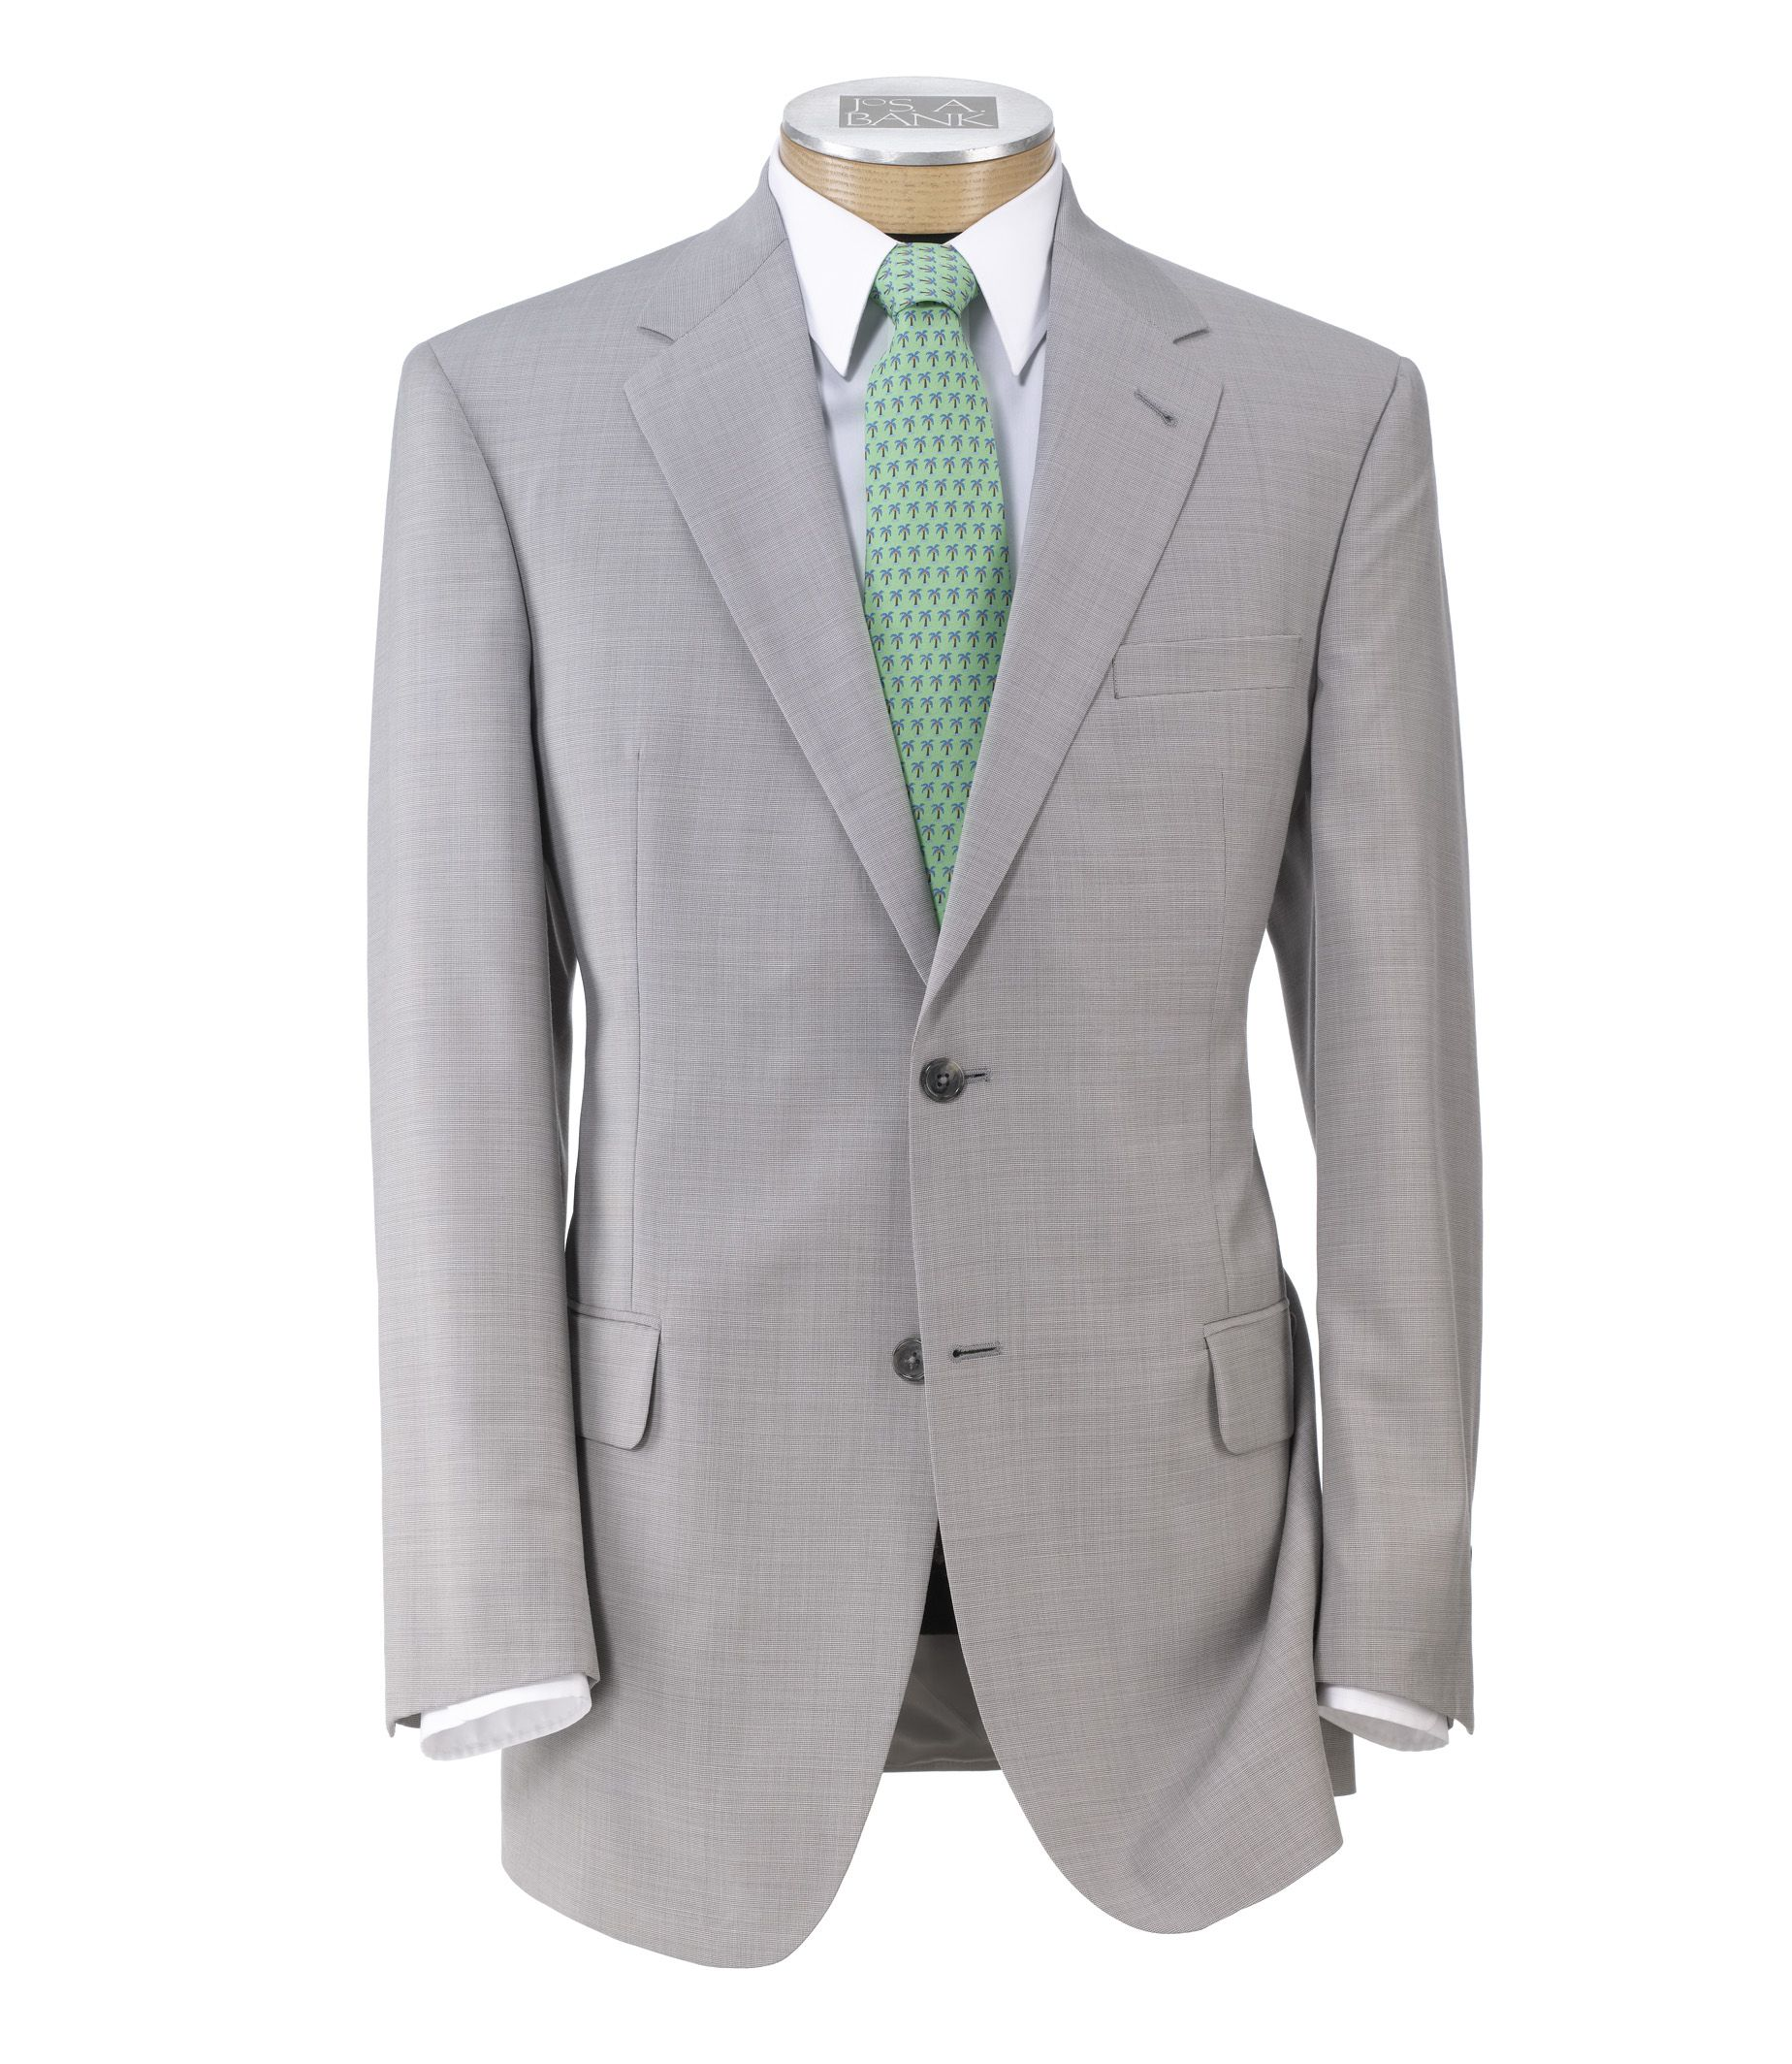 Signature Tropical 2Btn Tailored Fit Suit w/Plain Trousers - Extended Sizes